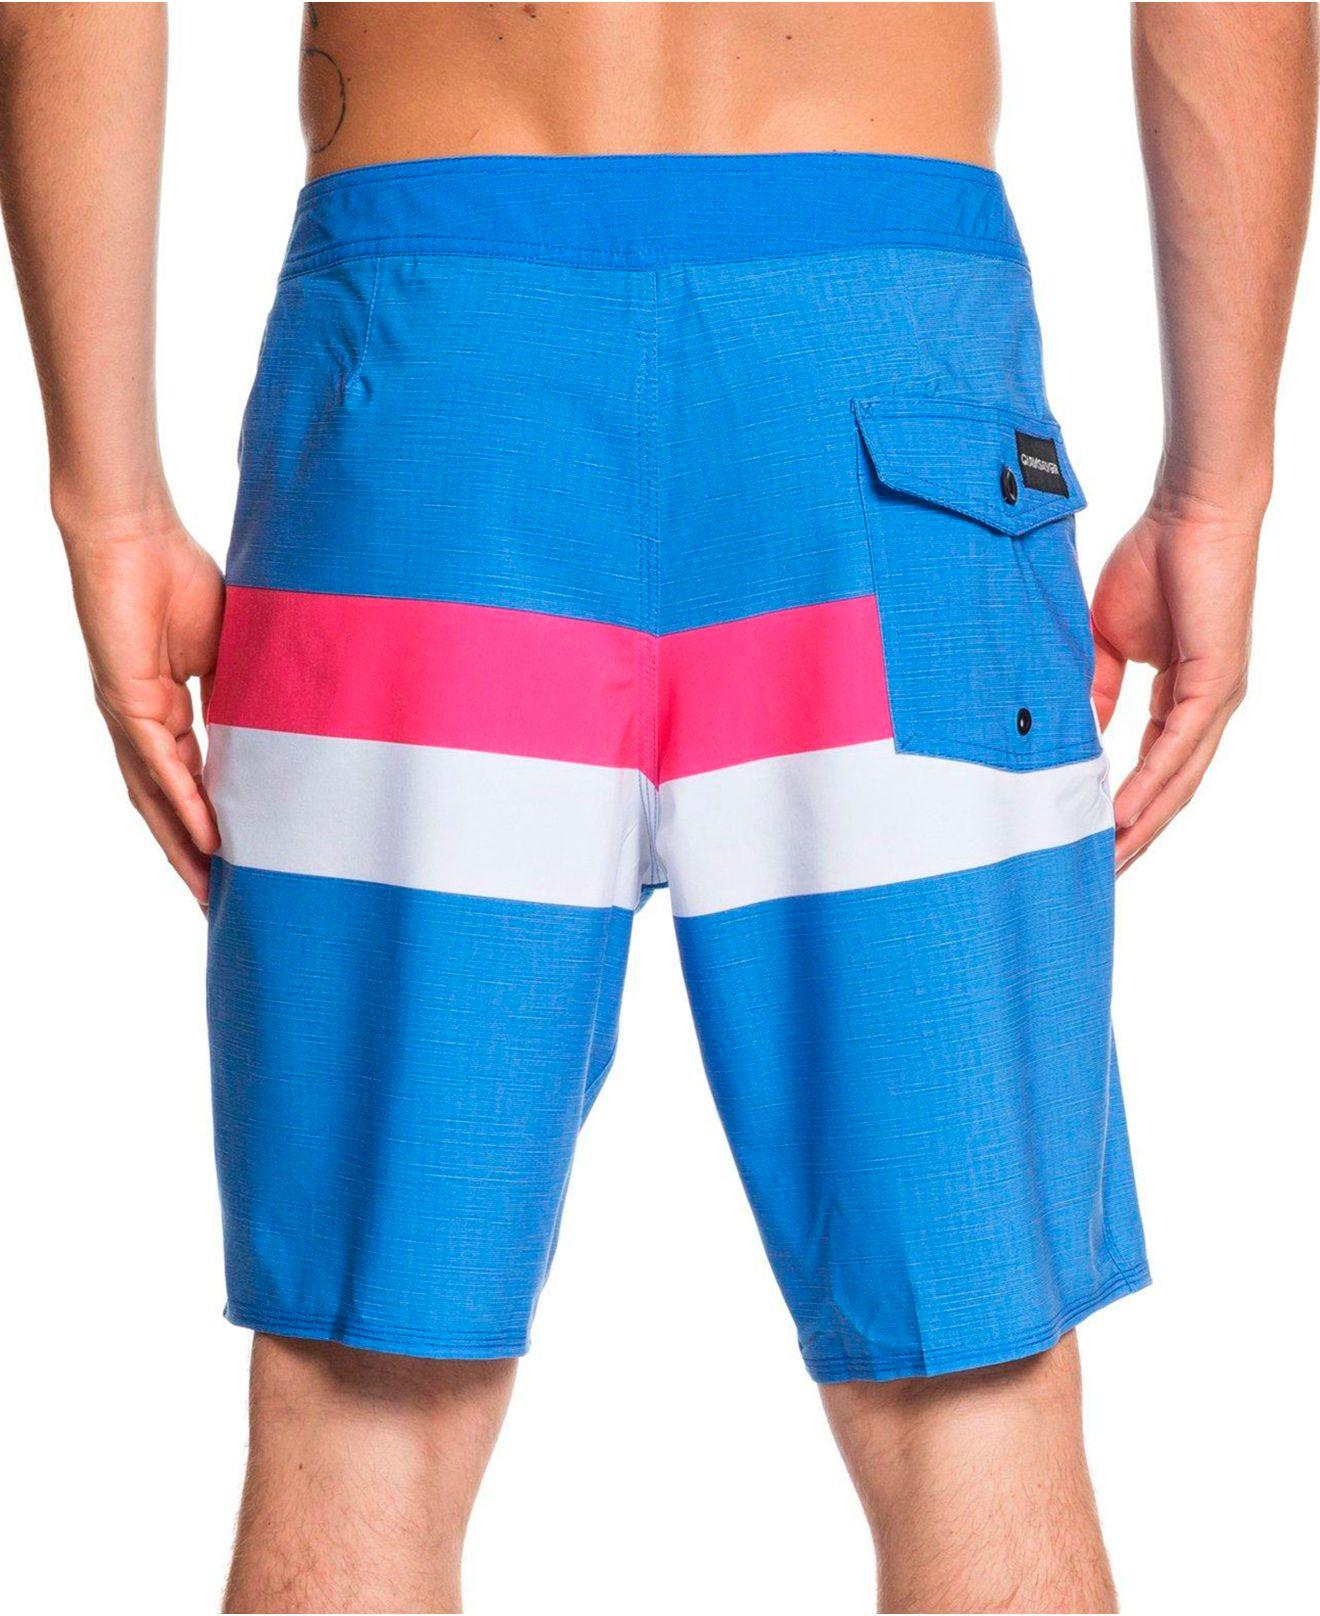 5fbc53f28 Lyst - Quiksilver Highline Seasons Board Shorts in Blue for Men